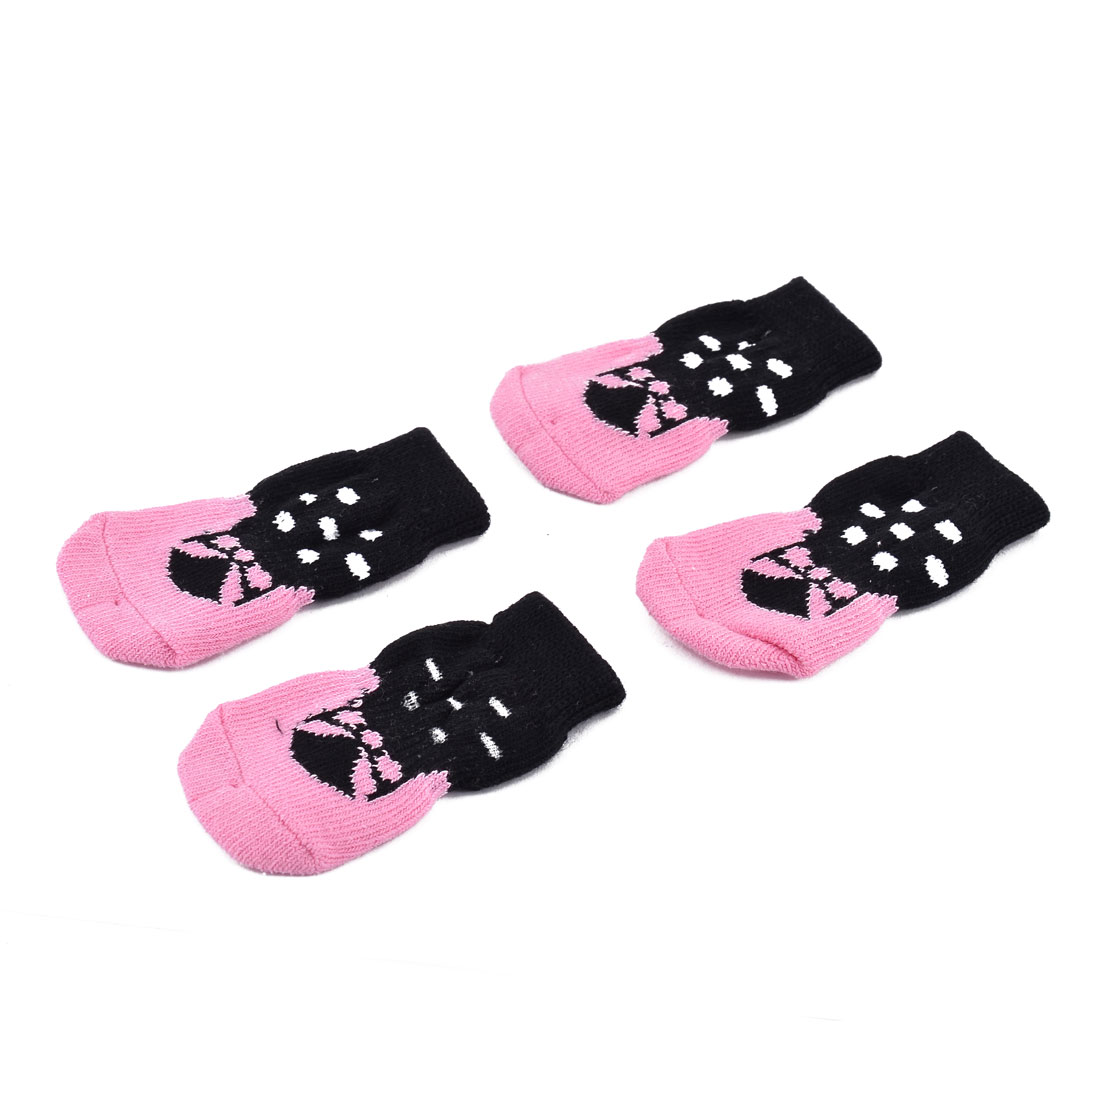 Household Outdside Pet Puppy Dog Cotton Elastic Breathable Anti-slip Sock Pair